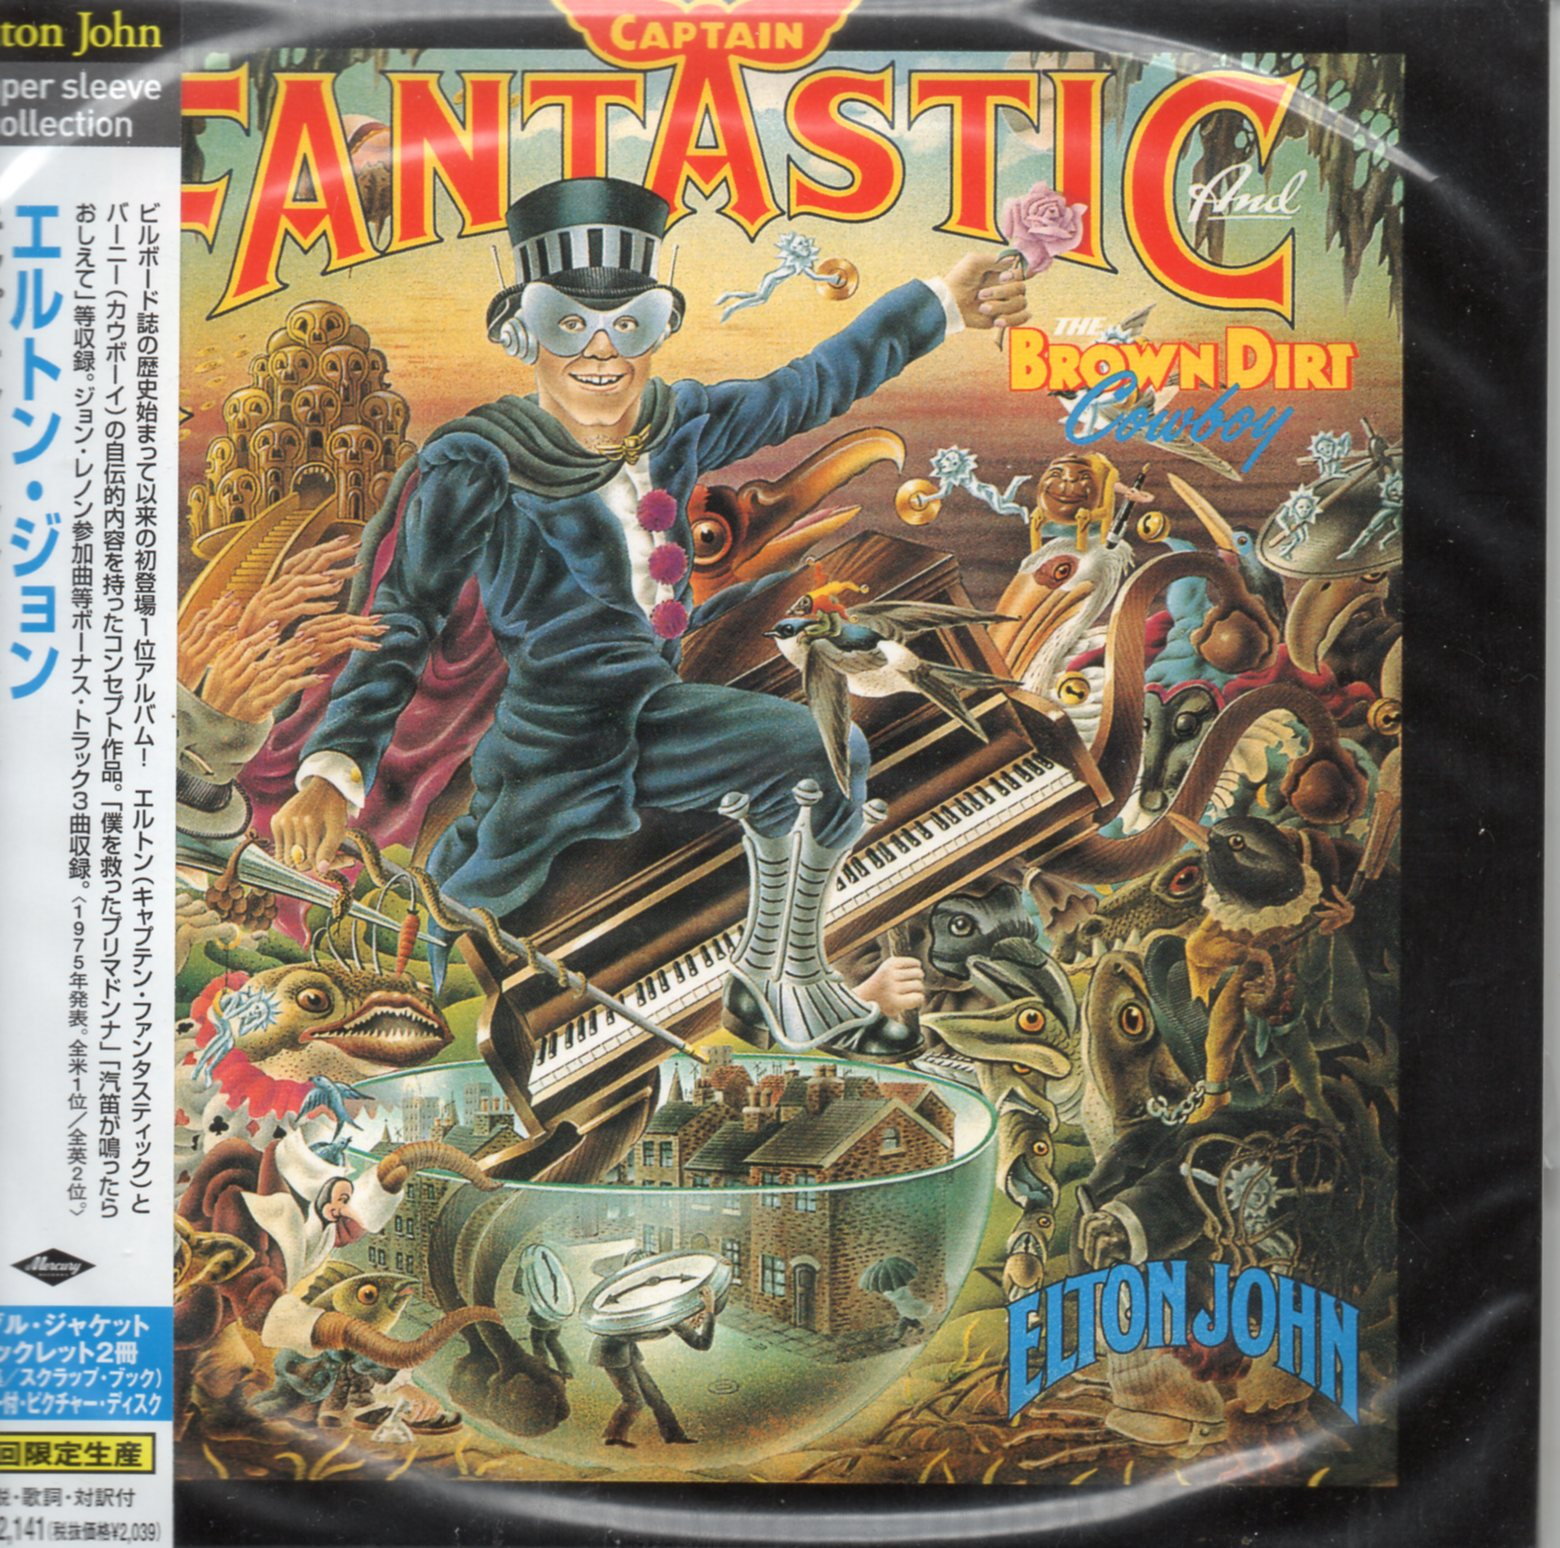 ELTON JOHN - Captain Fantastic - MINI LP JAPAN 13-track Paper Sleeve - CD